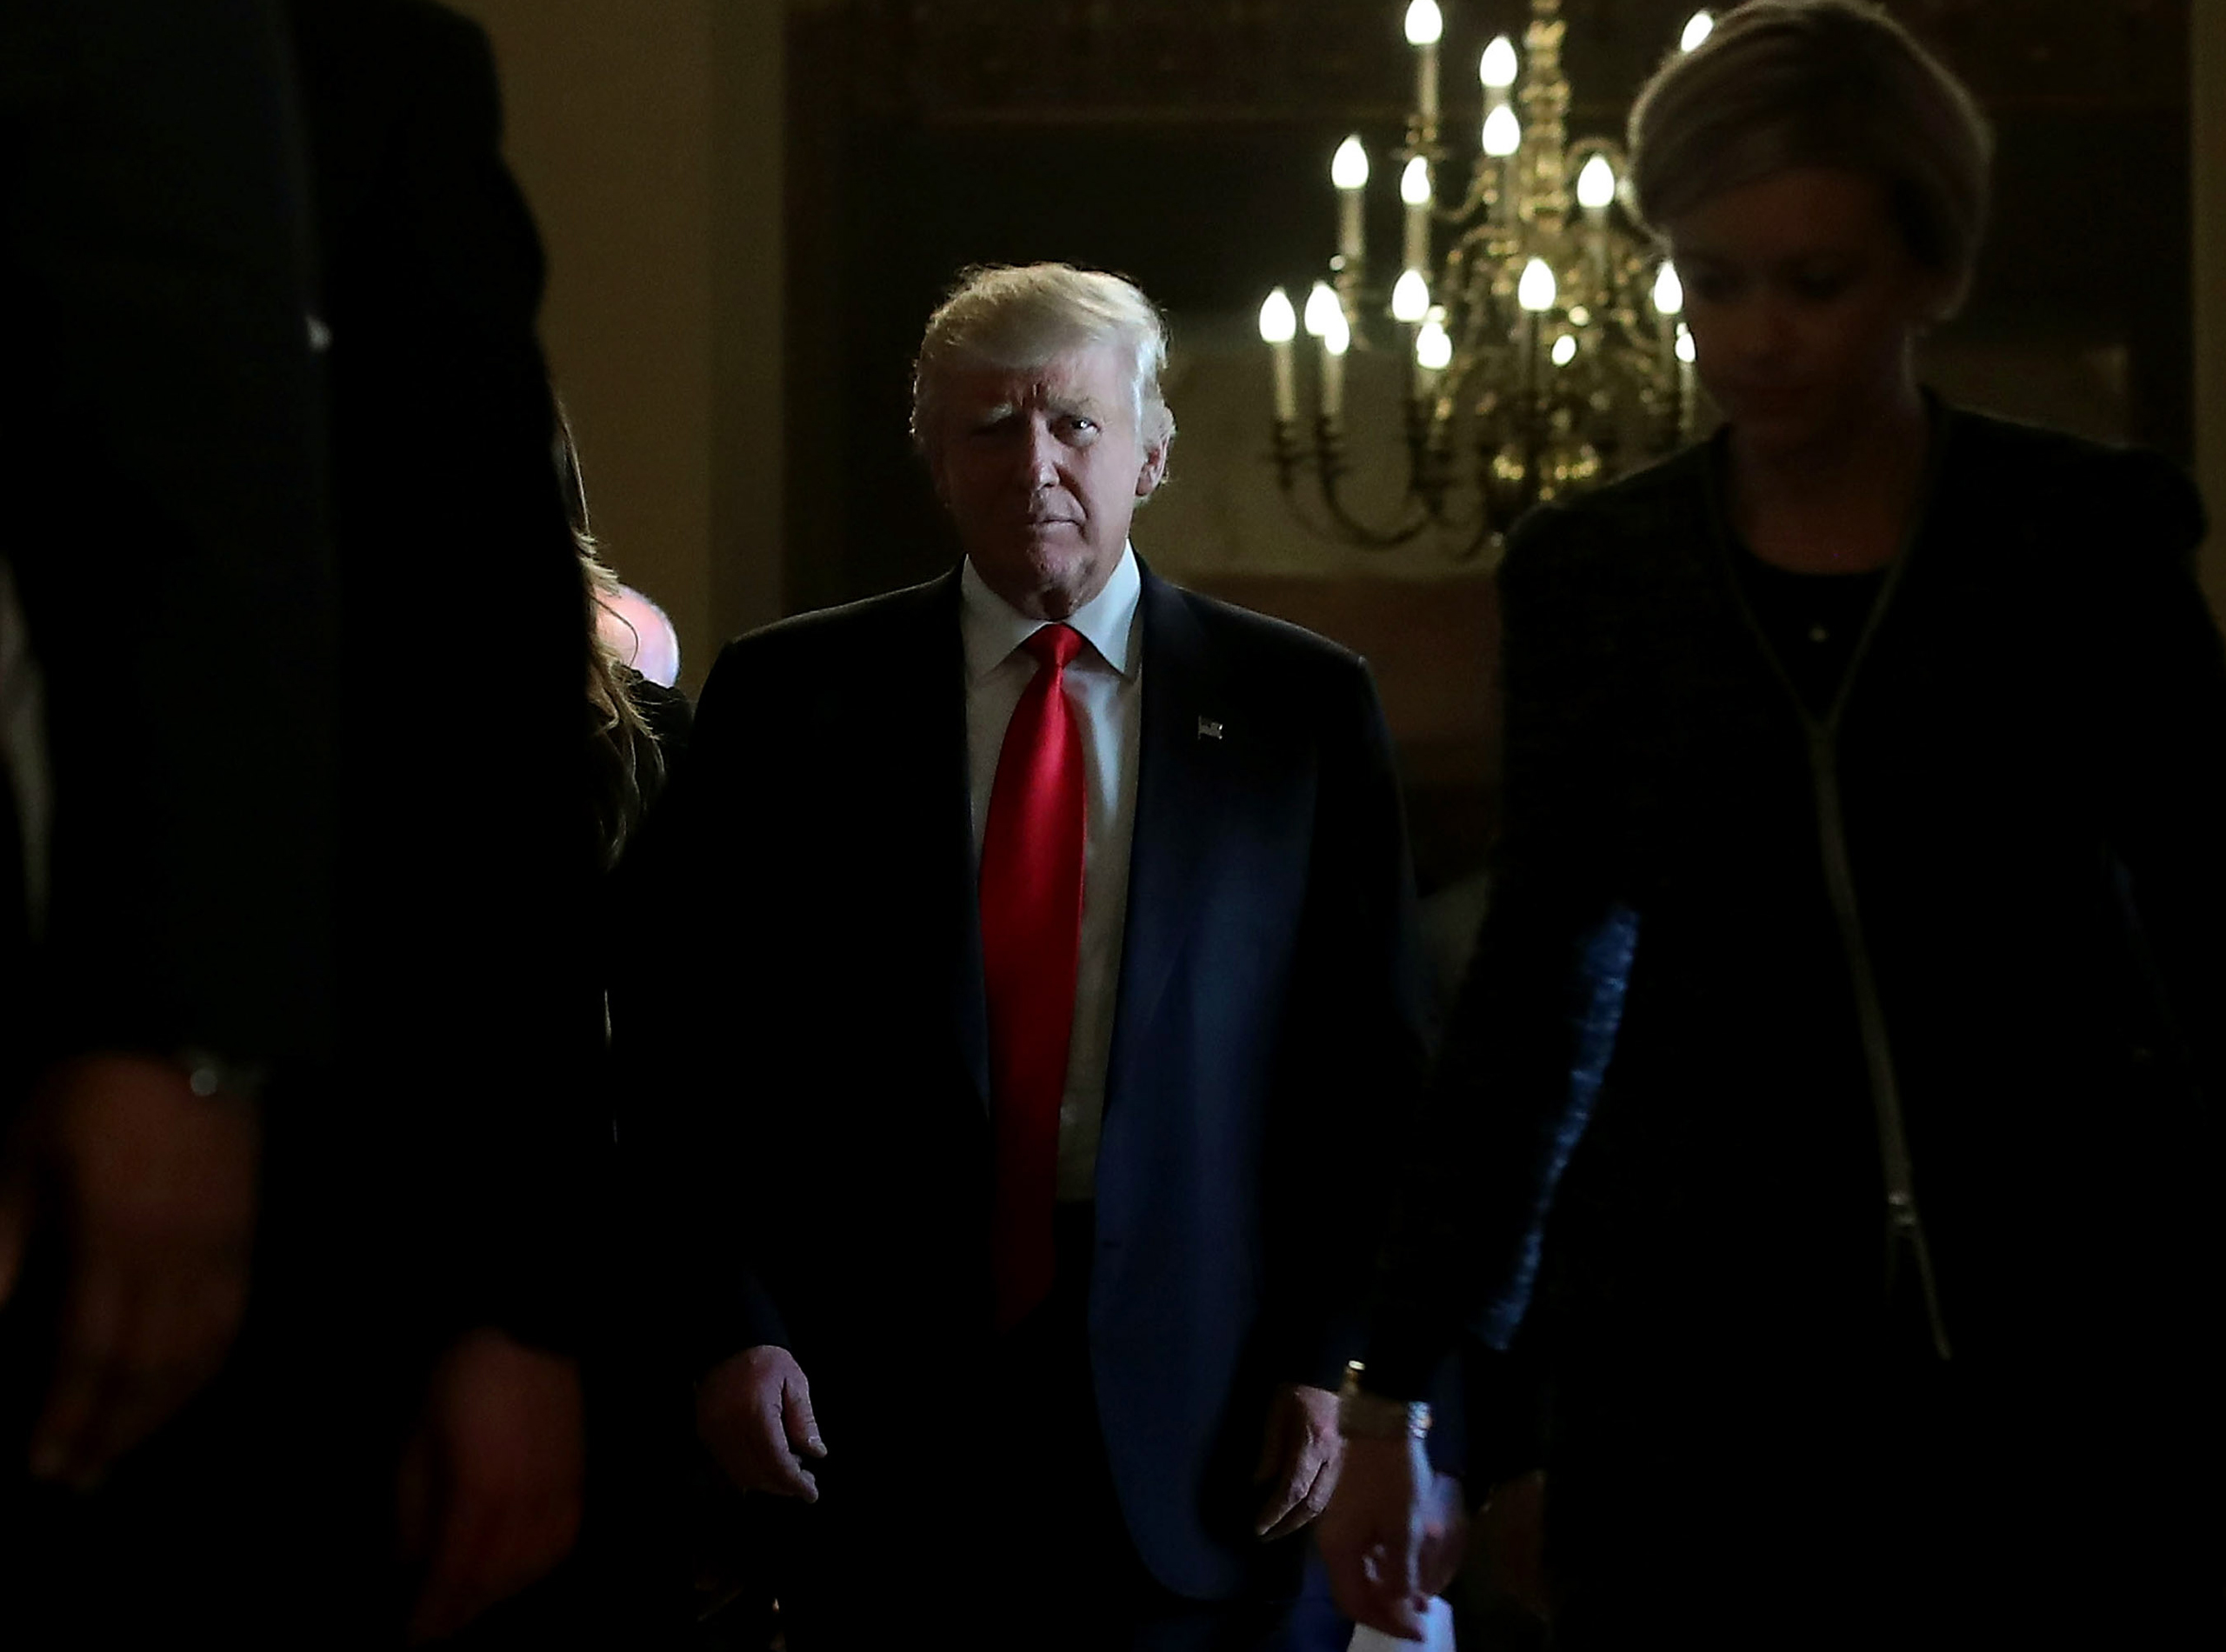 President-elect Donald Trump walks from a meeting with Senate Majority Leader Mitch McConnell at the U.S. Capitol in Washington on Nov. 10, 2016.